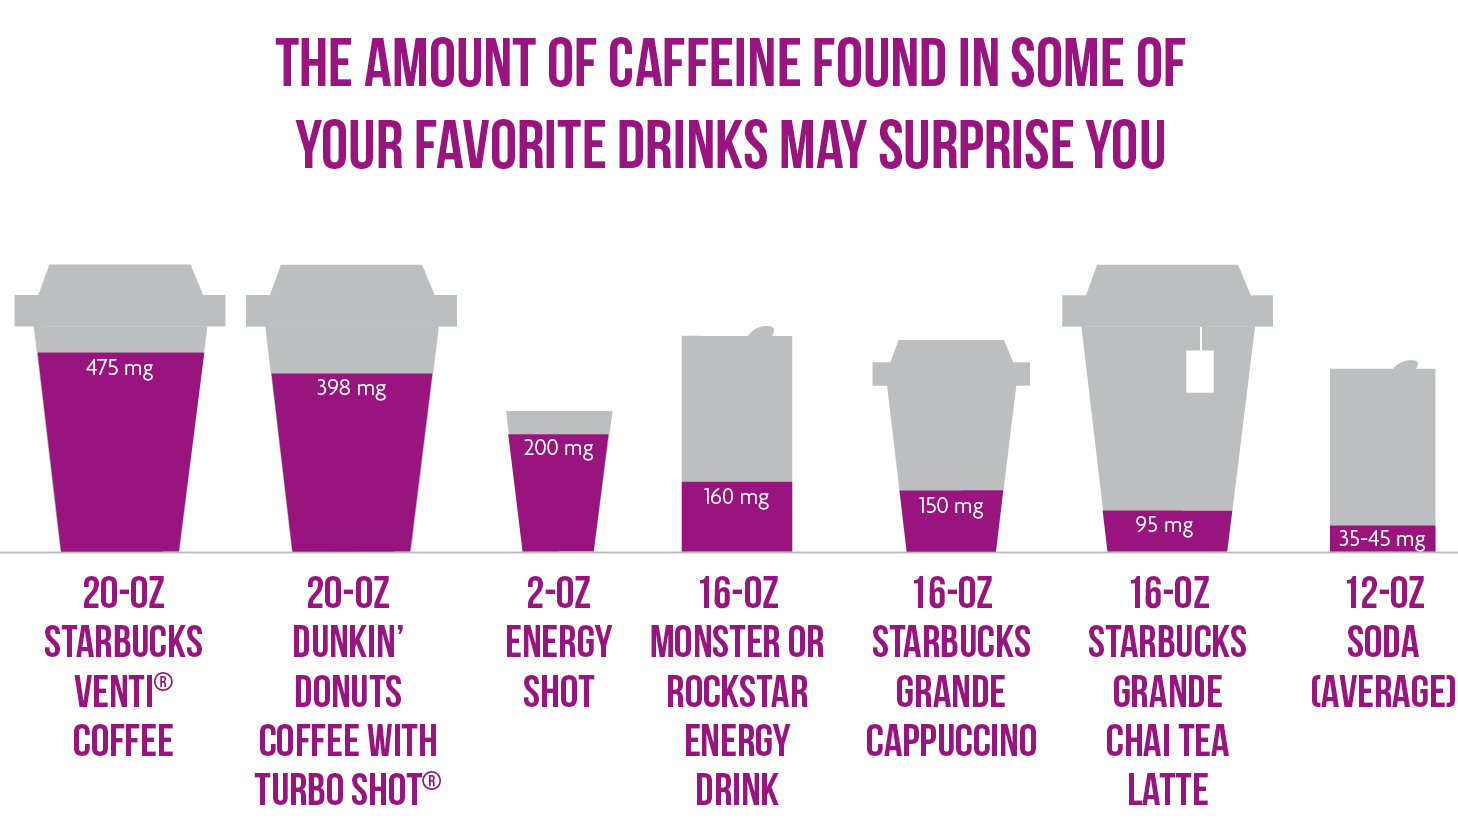 The amount of caffeine found in some of your favorite drinks may surprise you. A 20-ounce Starbucks Venti® coffee has 475 milligrams of caffeine. A 20-ounce Dunkin' Donuts coffee with a Turbo Shot® has 398 milligrams of caffeine. A 2-ounce energy shot has up to 200 milligrams of caffeine. A 16-ounce Monster or Rockstar energy drink has 160 milligrams of caffeine. A 16-ounce Starbucks grande cappuccino has 150 milligrams of caffeine. A 16-ounce grande Starbucks chai tea latte has 95 milligrams of caffeine. A 12-ounce average soda has 35-45 milligrams of caffeine.